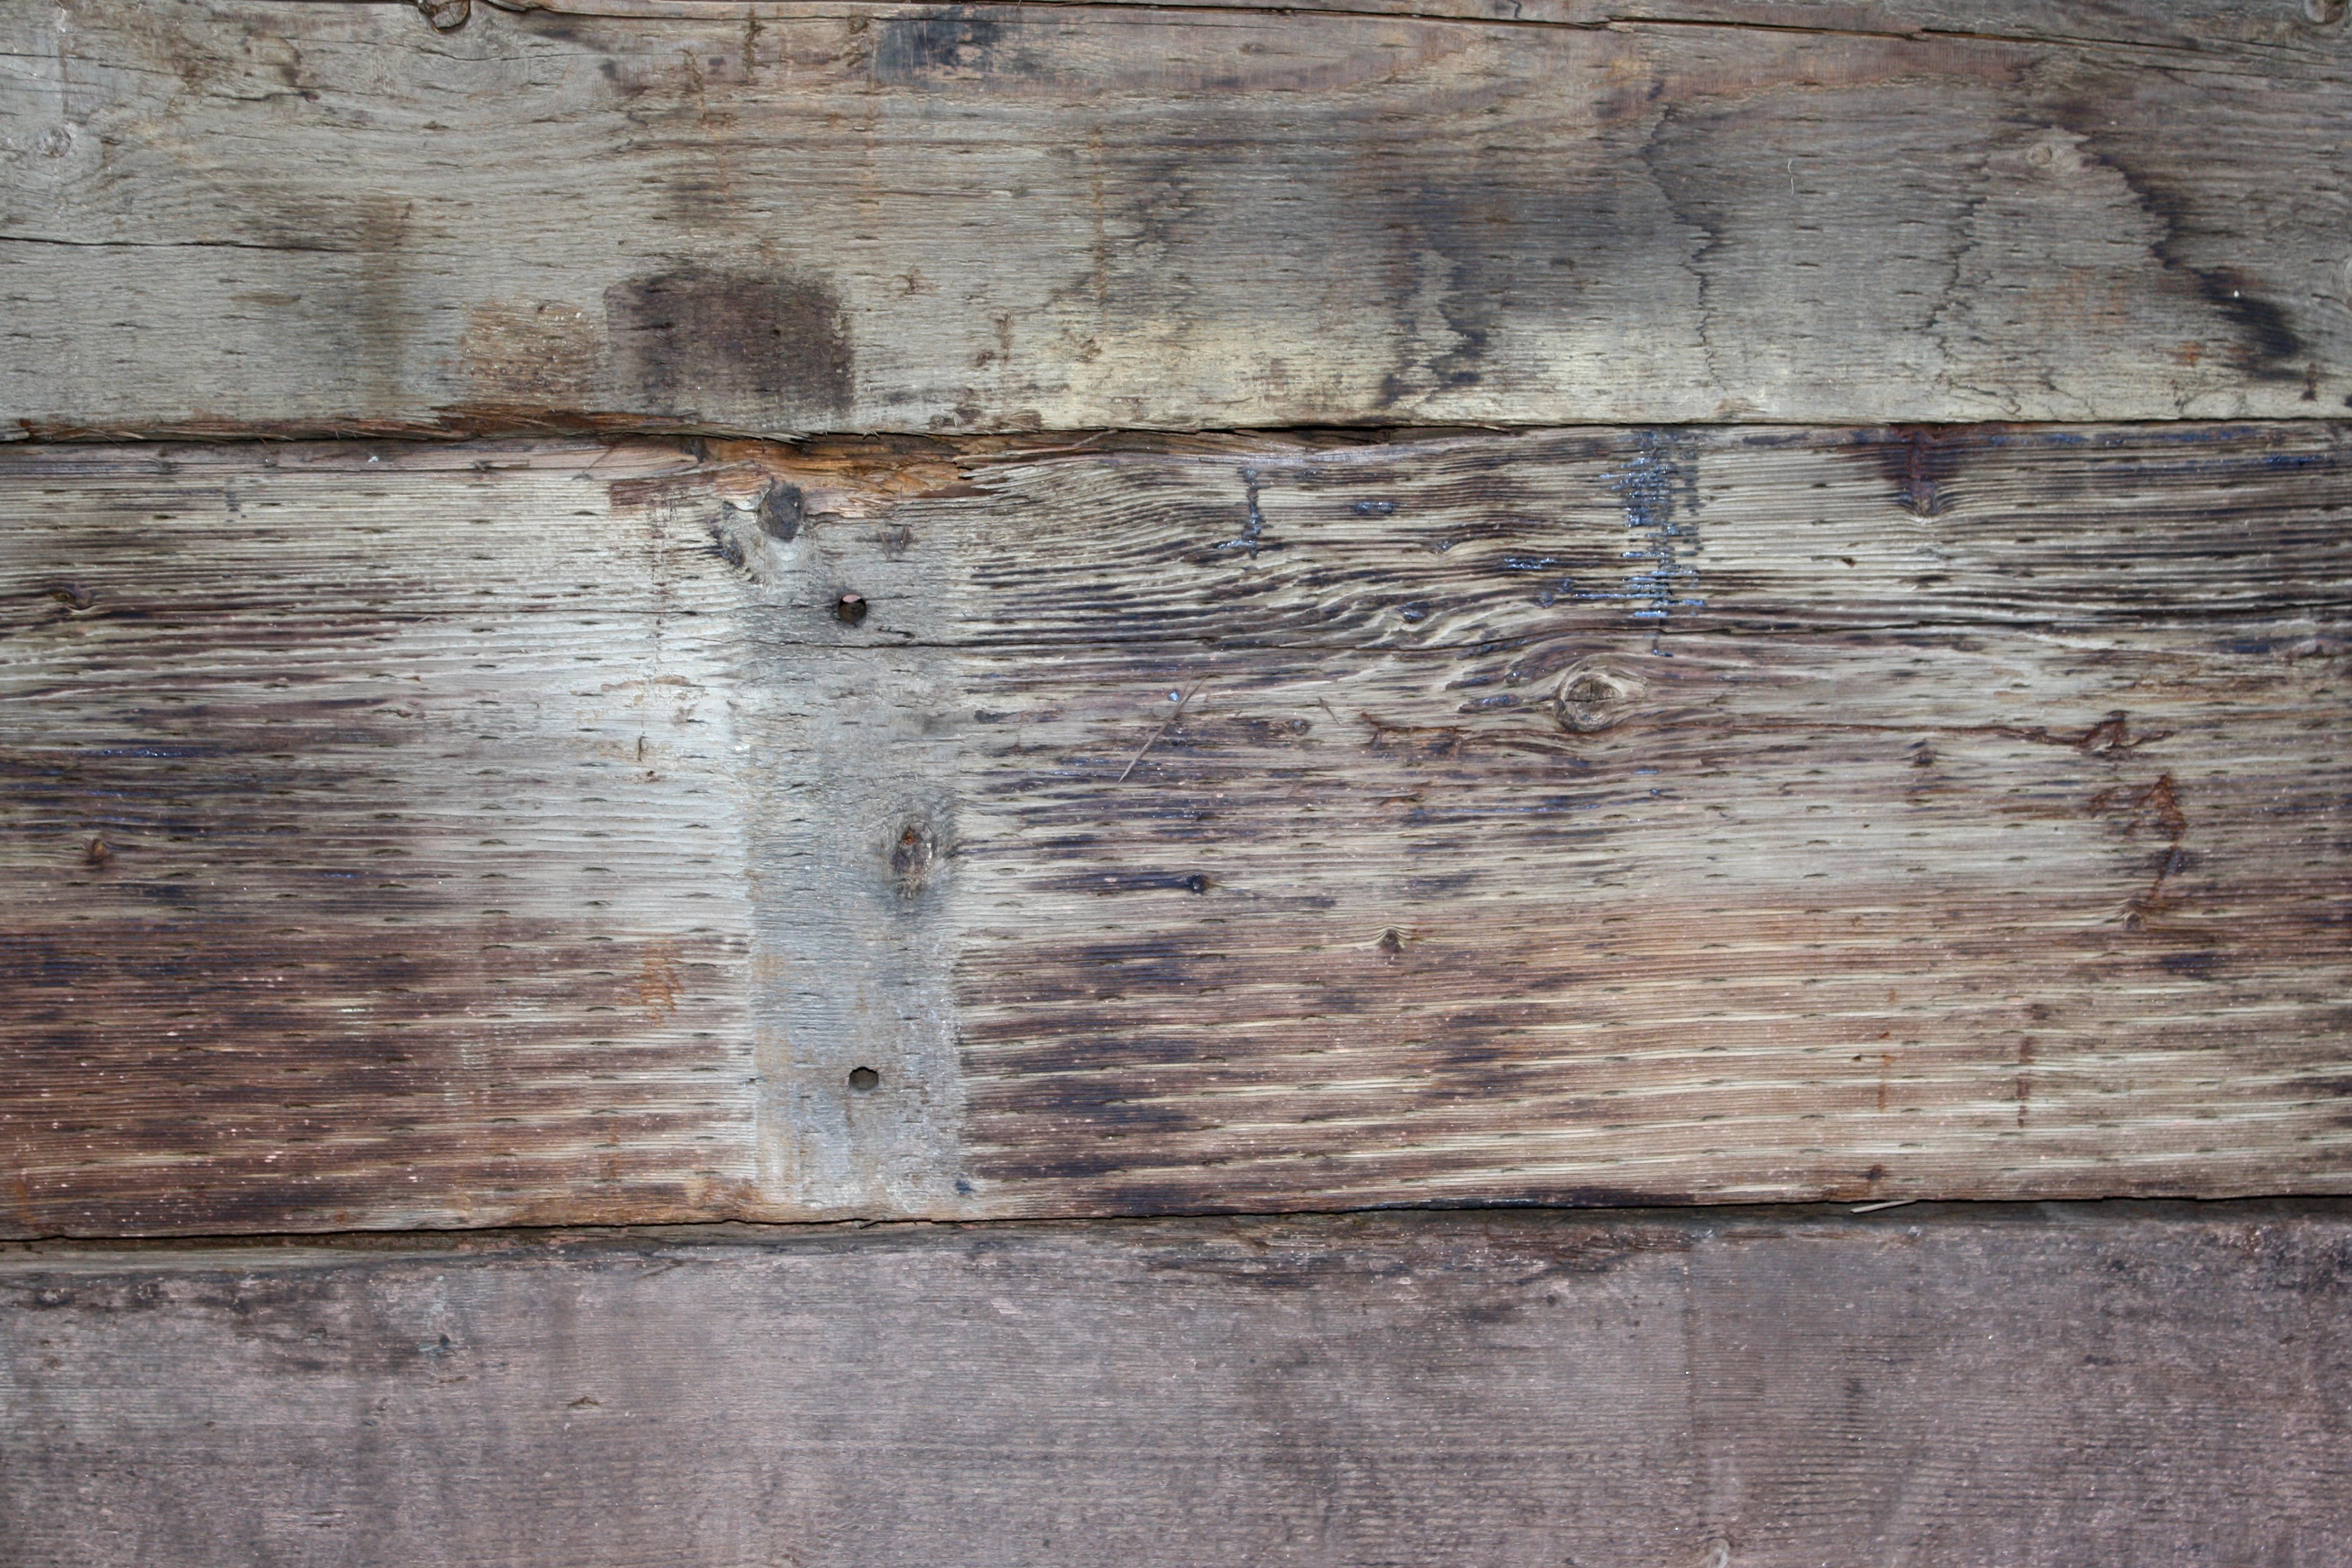 Old Wooden Boards Close Up Texture Picture | Free Photograph ...